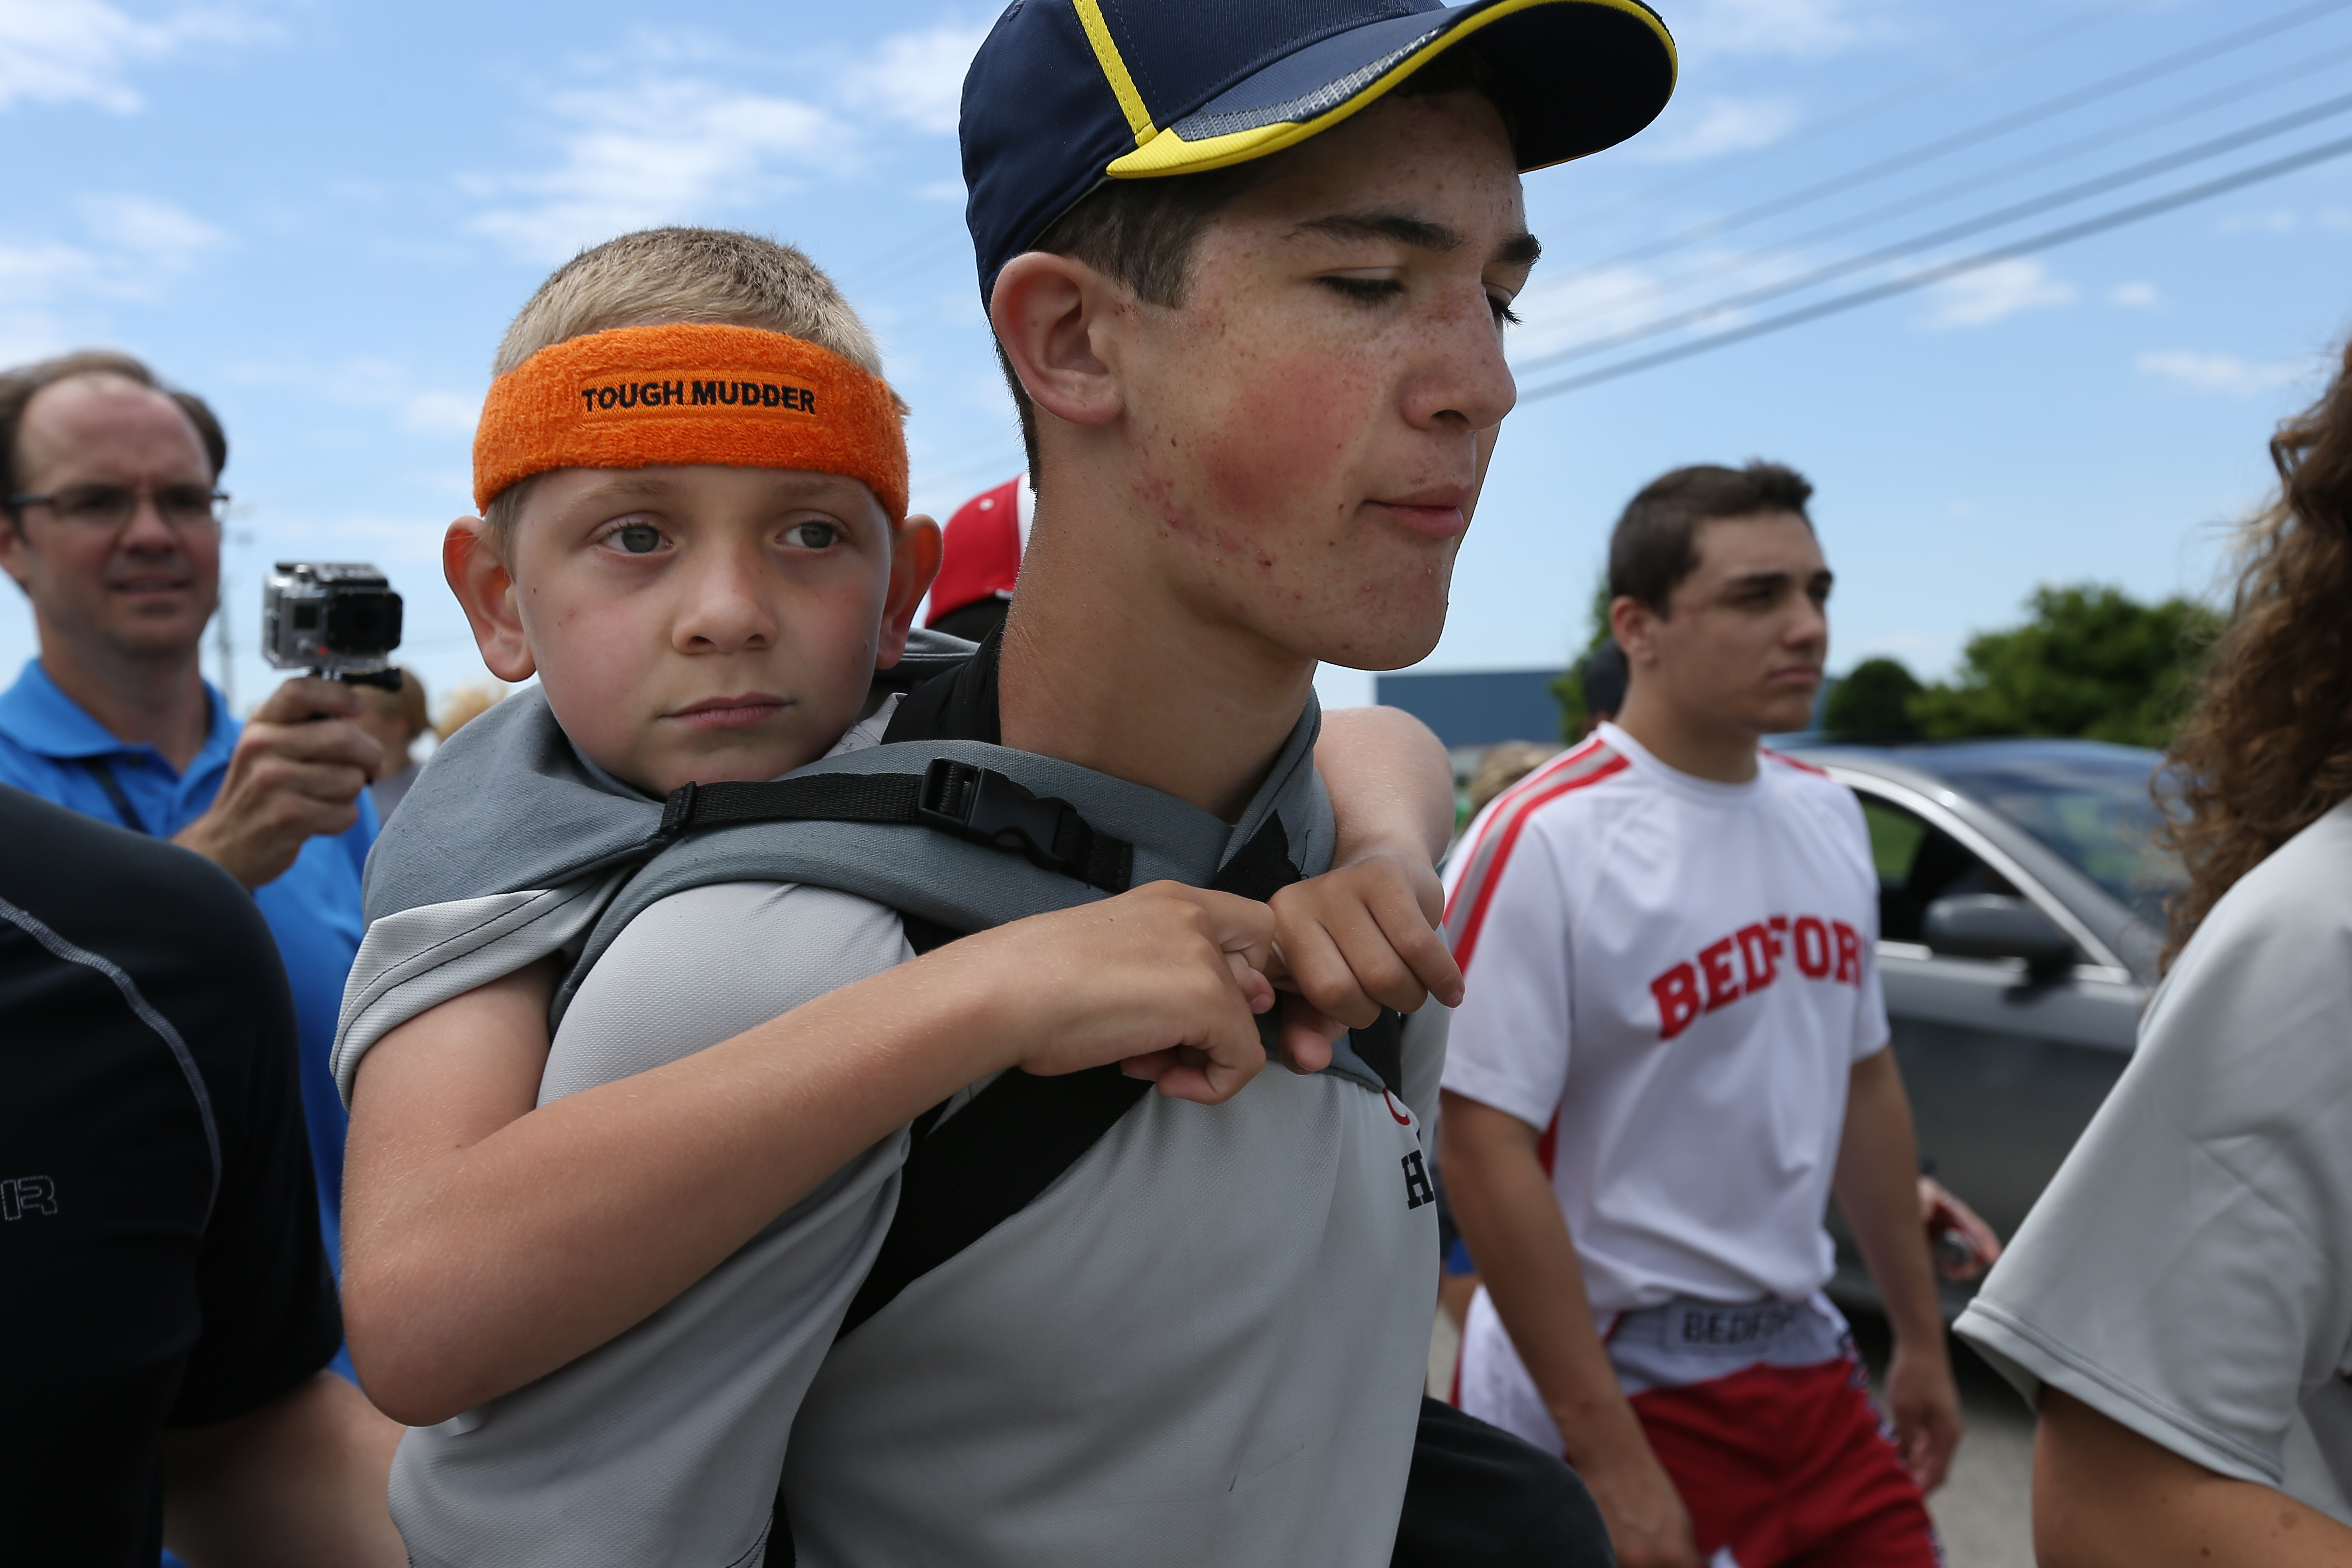 Braden Gandee, 7, rides on the back of his brother Hunter, 14, as they close in on the final miles to the University of Michigan's Bahna Wrestling Center on Sunday, June 8, 2014. Hunter carried Braden, who has cerebral palsy, 40 miles from Temperance, Mich., to Ann Arbor.